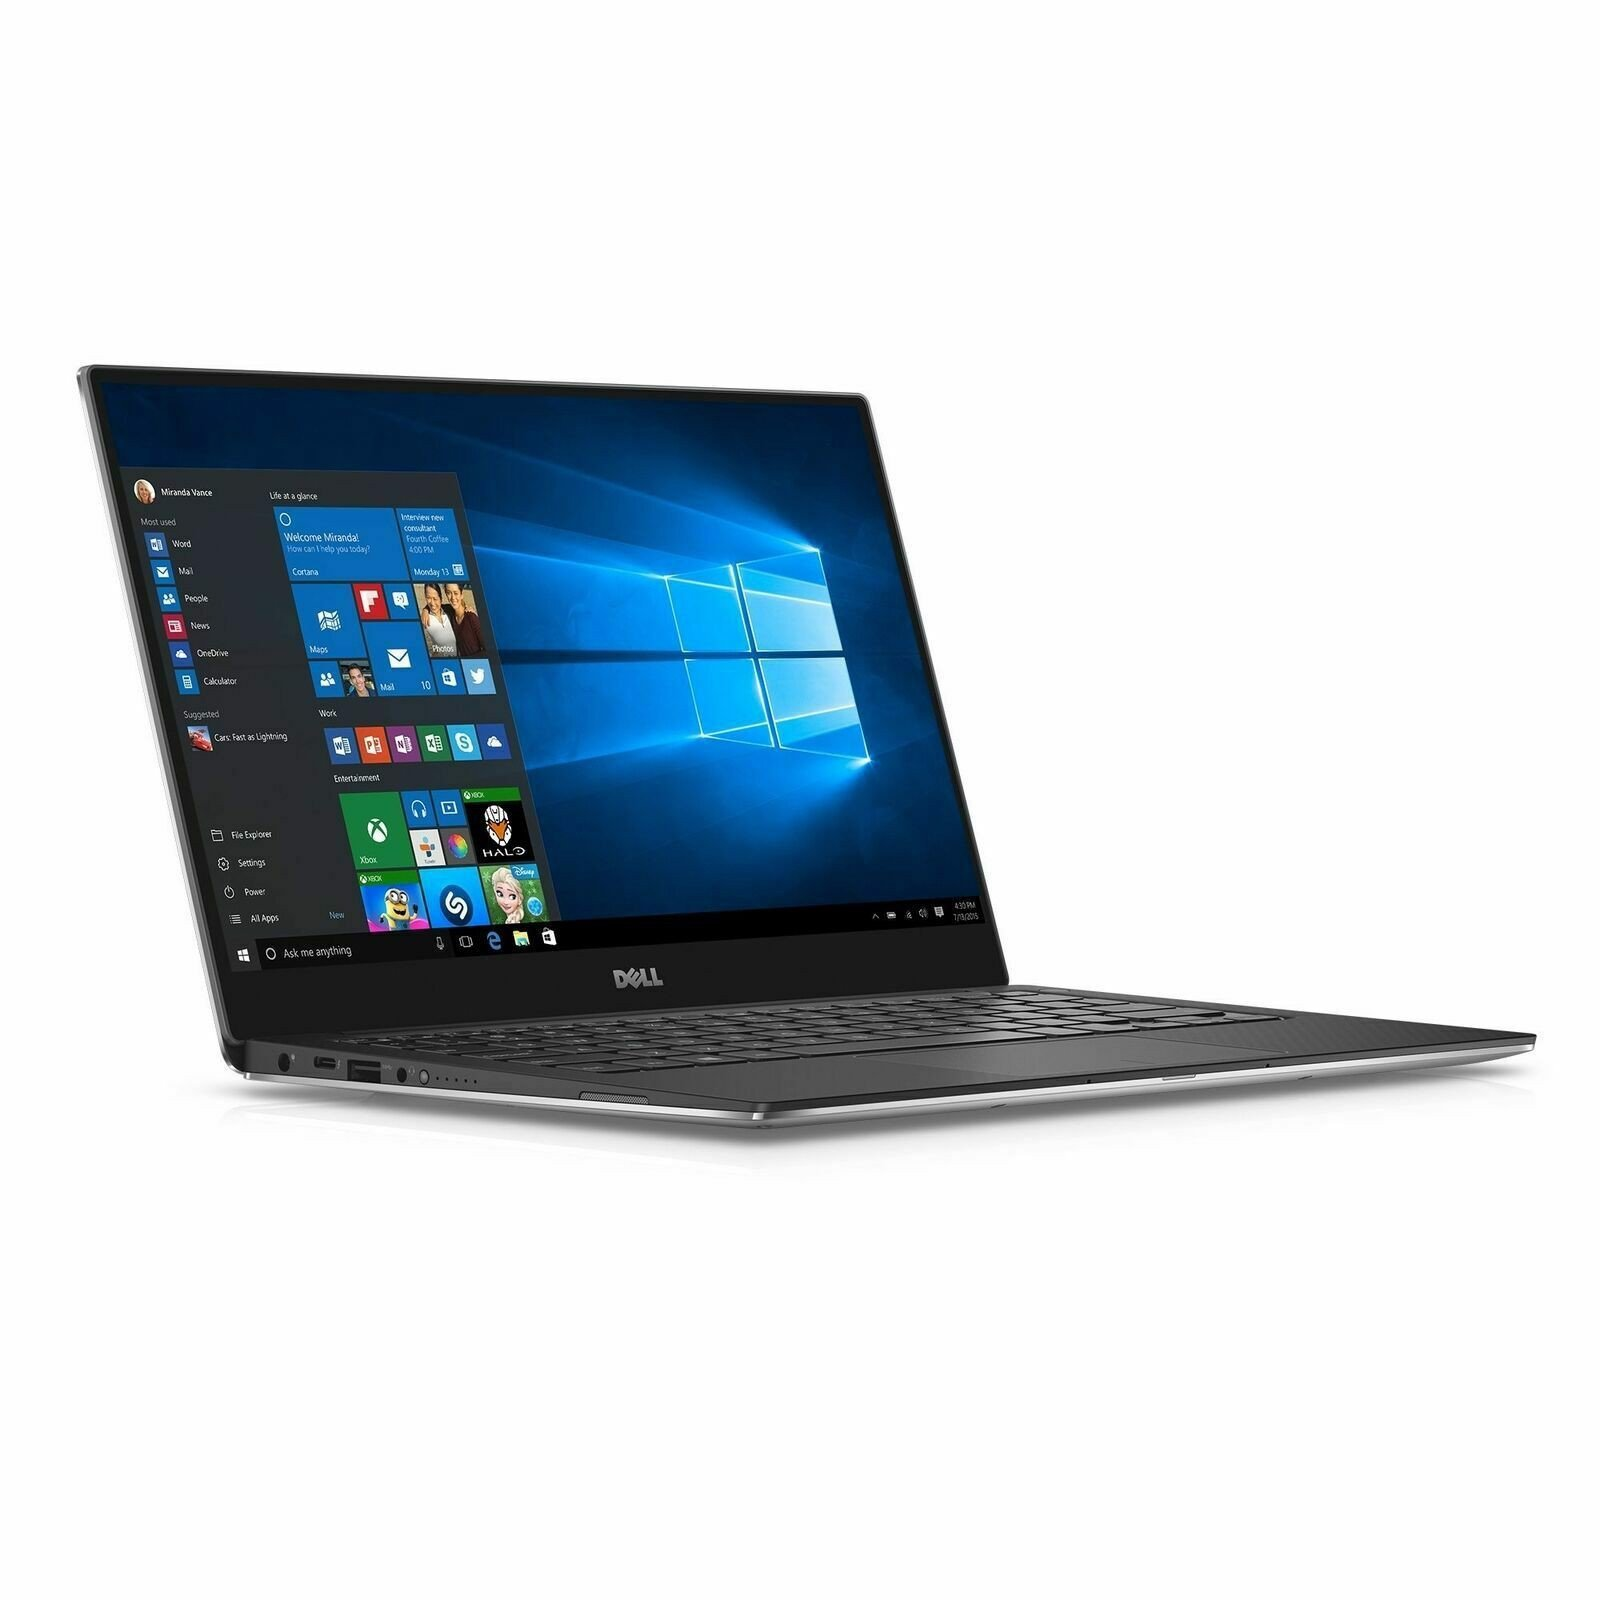 Laptop Cũ Dell XPS 9350 - Intel Core i5